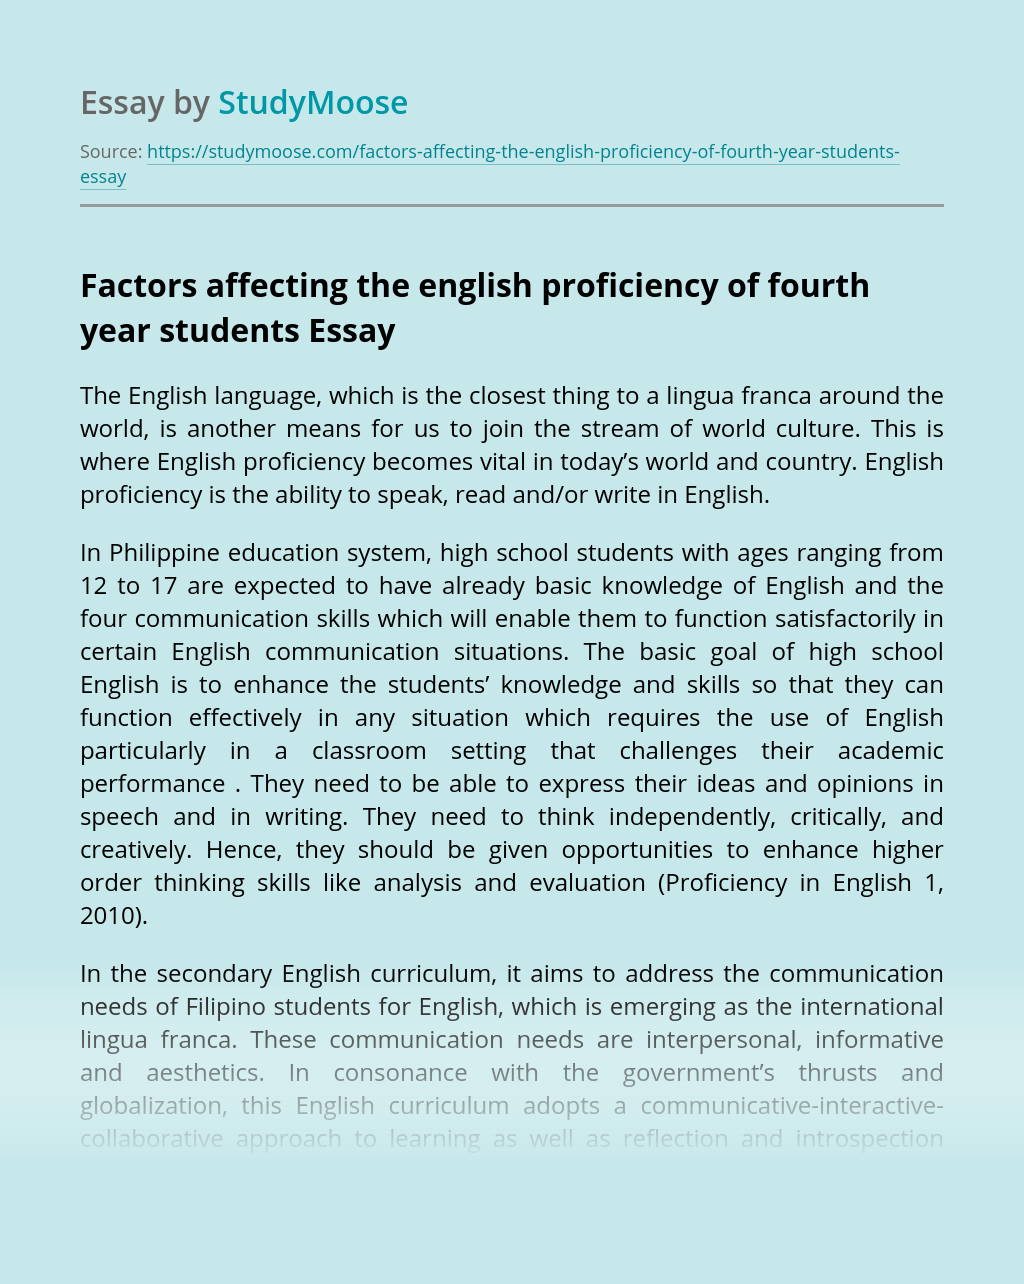 Factors affecting the english proficiency of fourth year students